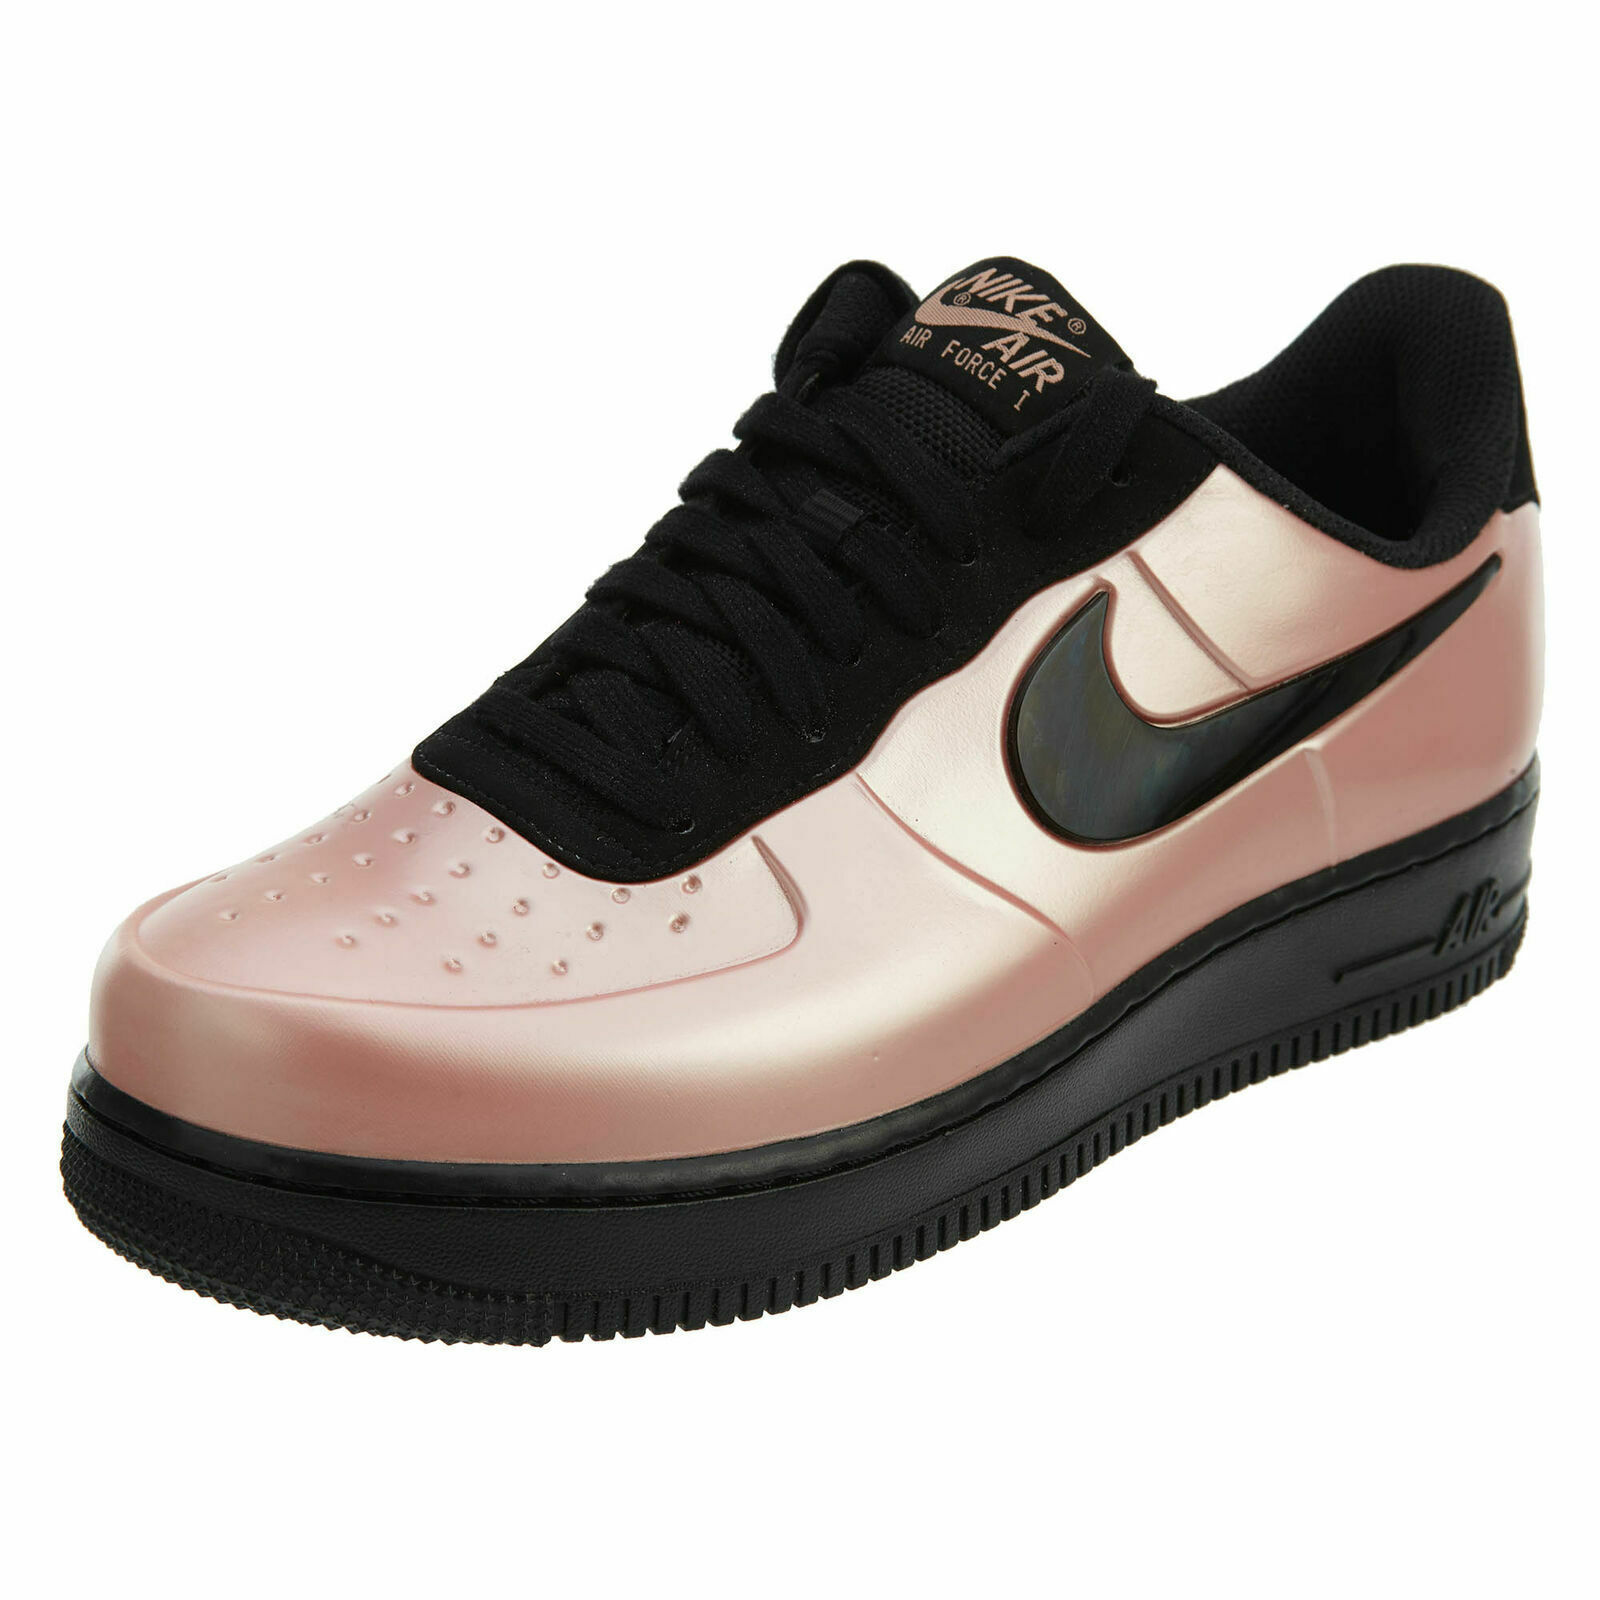 Nike Air Force 1 Schiuma pro Coppa Rosa and 50 similar items